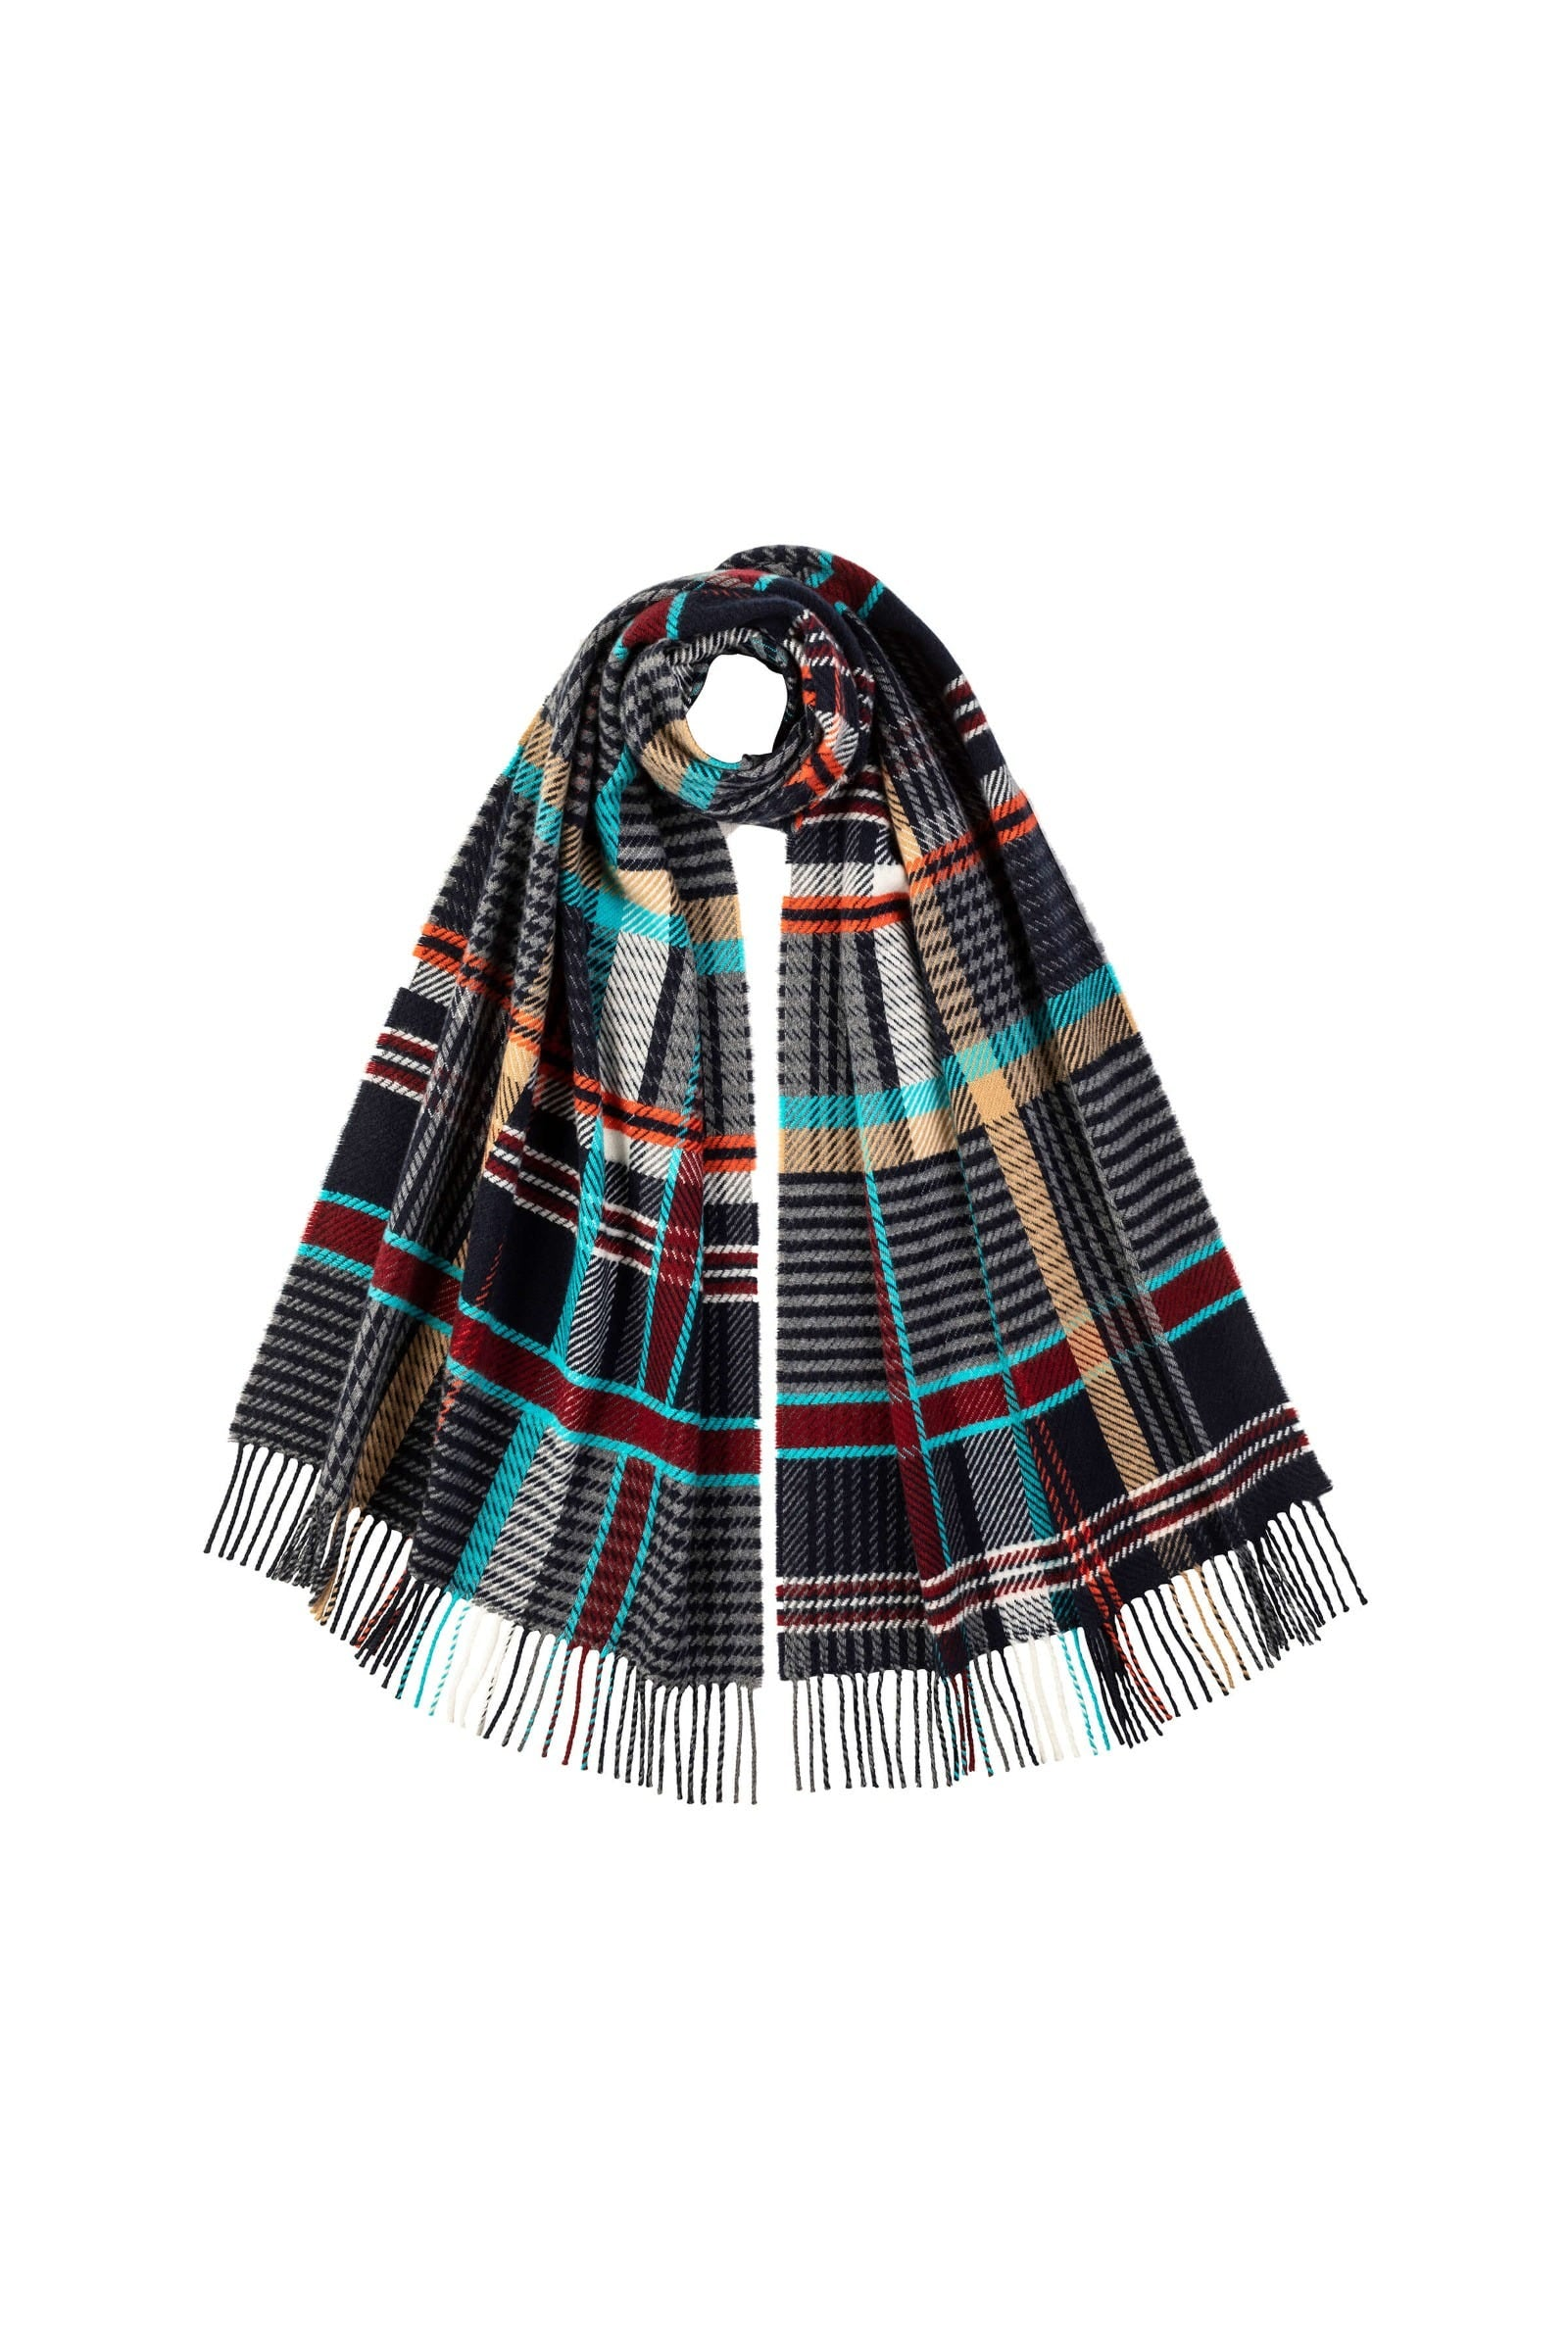 JOHNSTONS OF ELGIN MULTI CASHMERE WOVEN SCARF